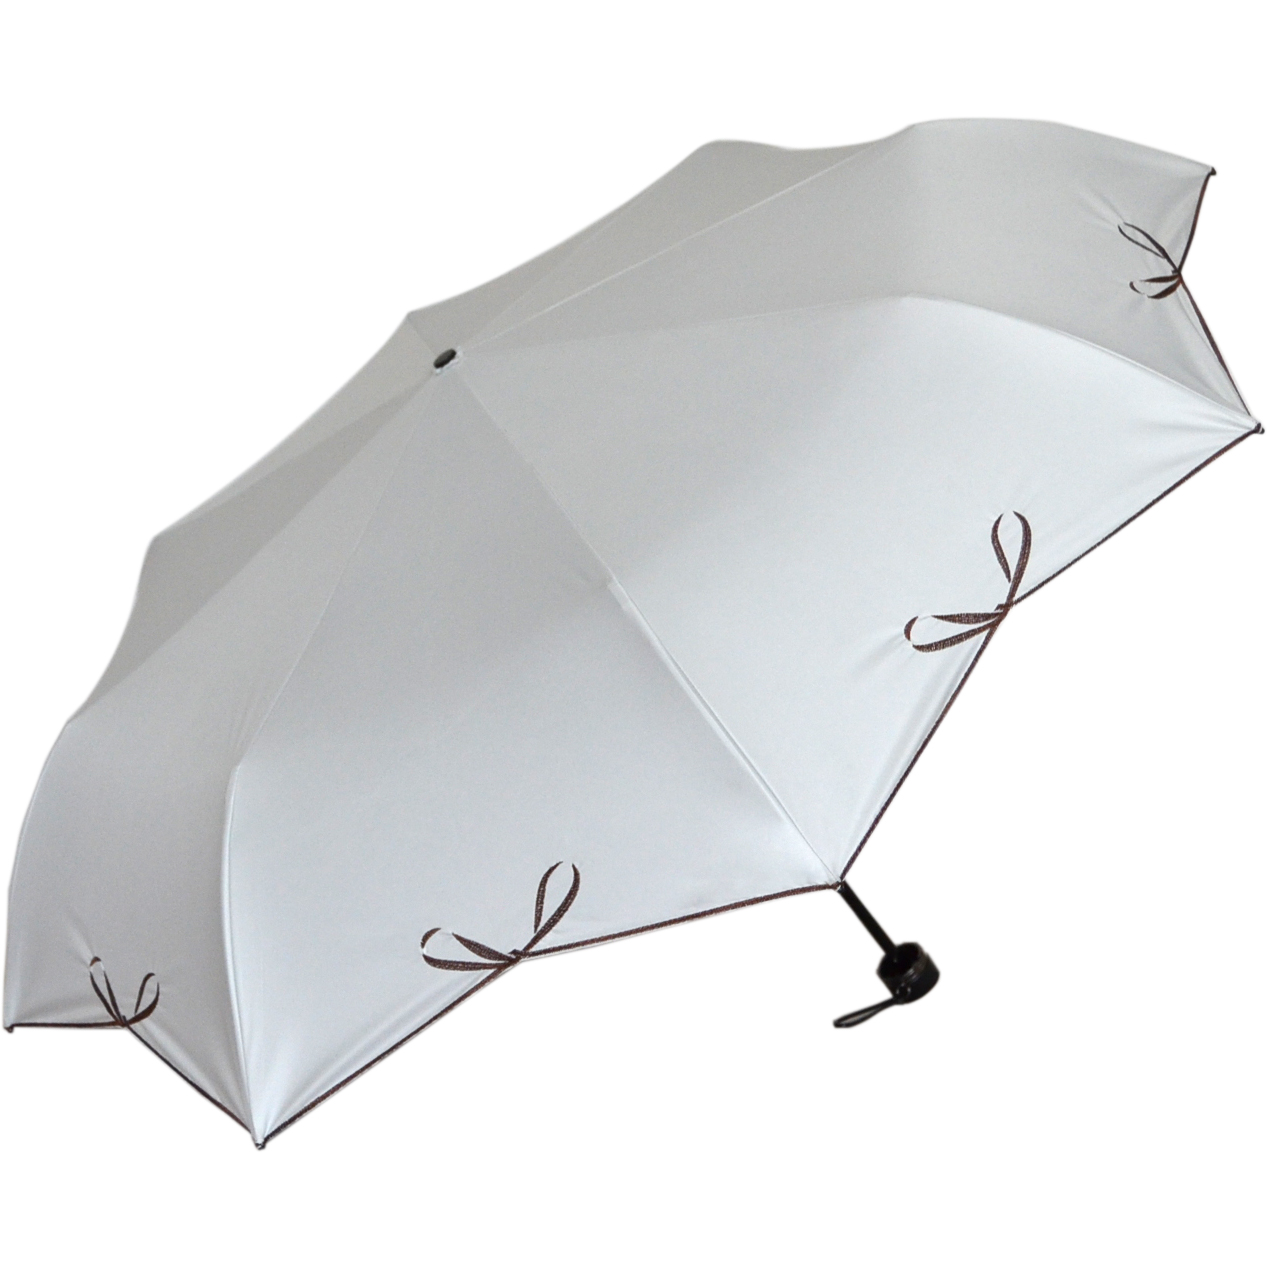 Men Ladies RLDSESS Cartoon Rainproof Patio Umbrella 42 Inches Rainproof 10 Ribs Automatic Opening and Closing,Cute Baby Donkey Posing Isolated On White Background,Windproof